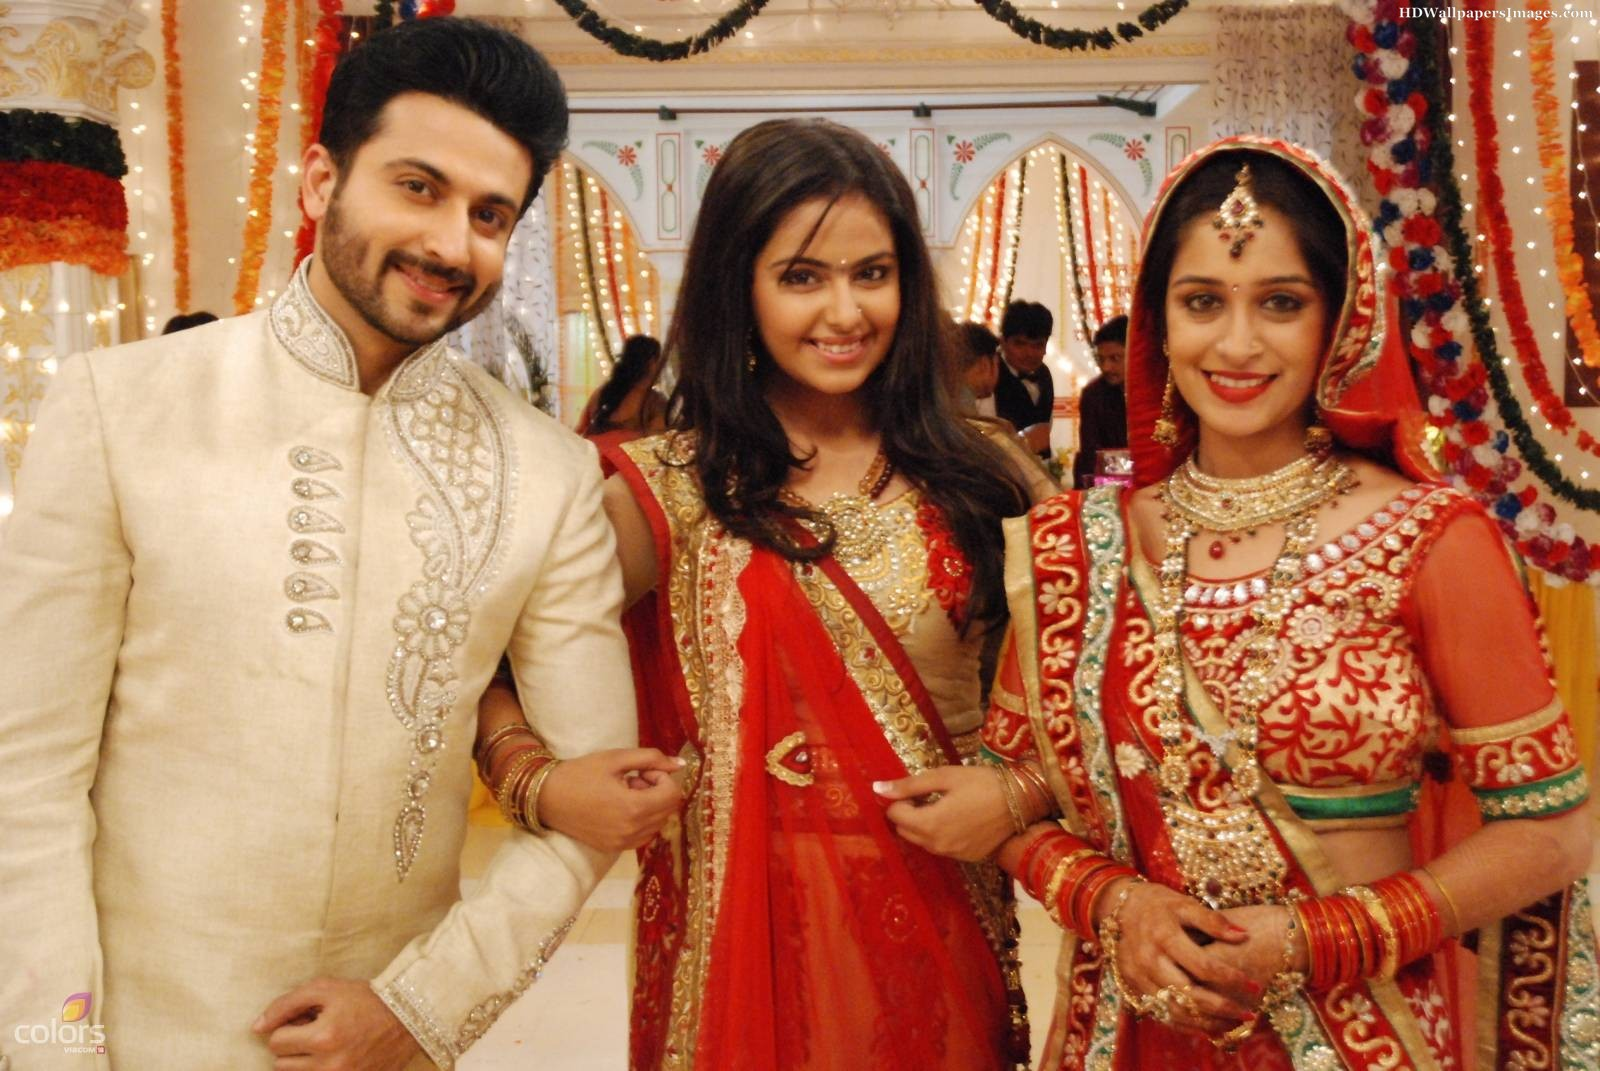 Sasural Simar Ka Episode Written UpdatesSasural Simar Ka Episode Written Updates